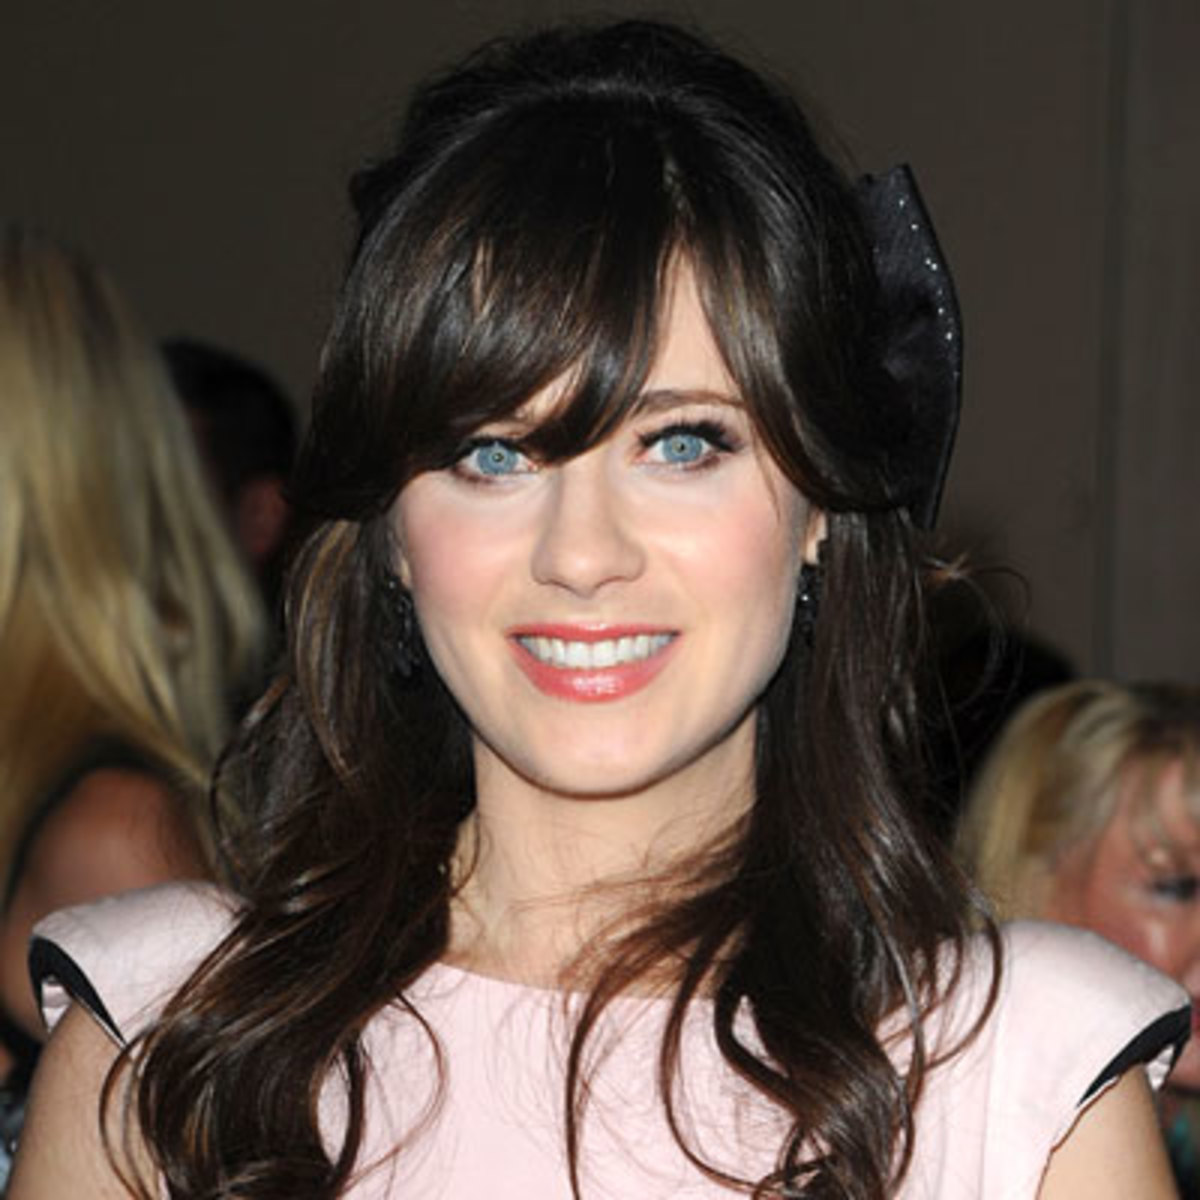 Zooey Deschanel with dark hair